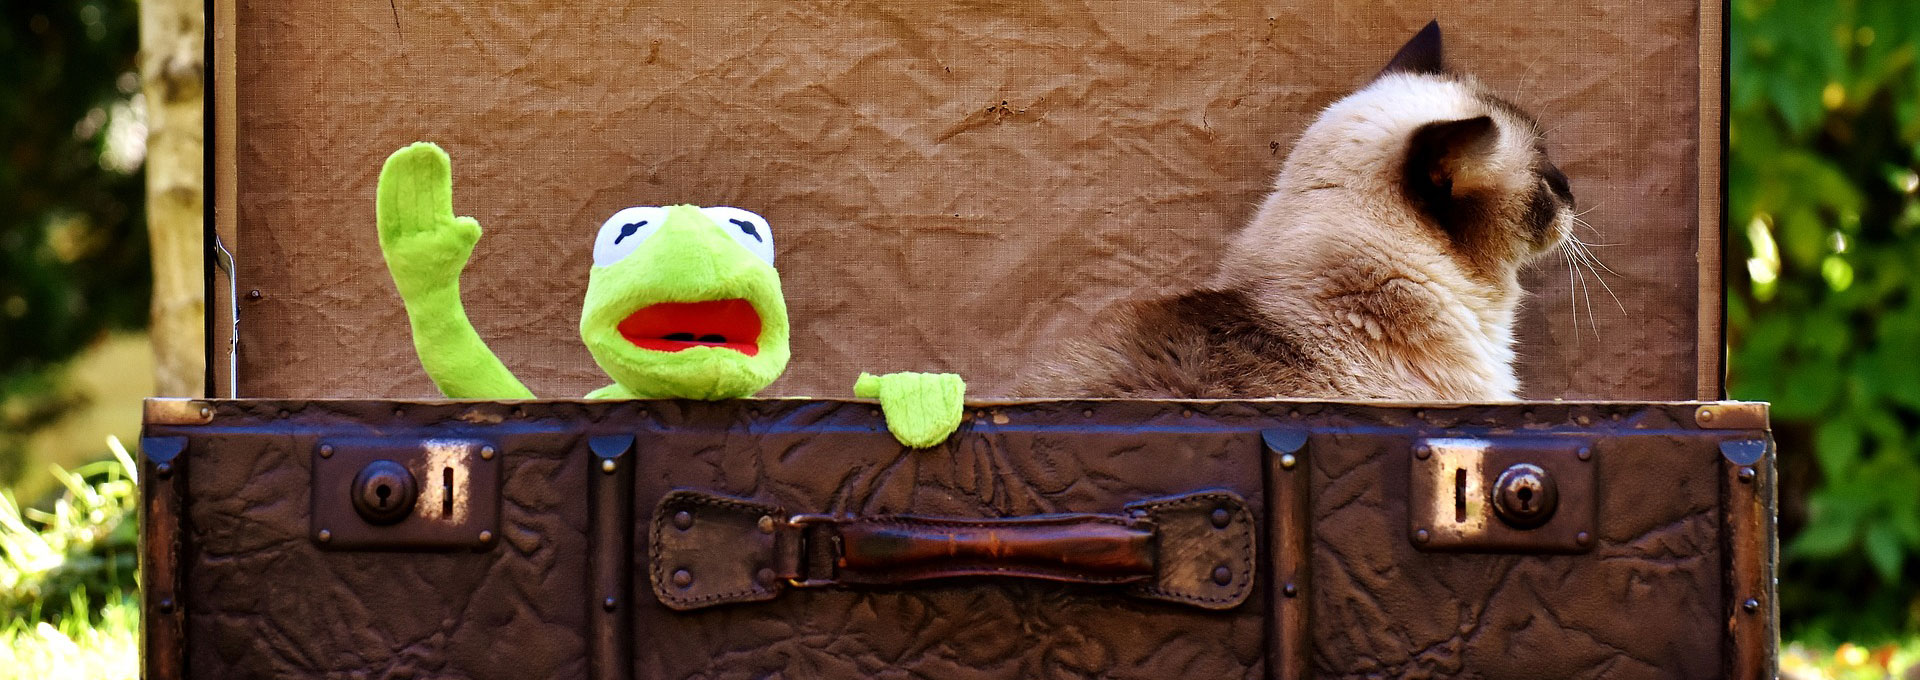 kermit and himalayan cat in suitcase